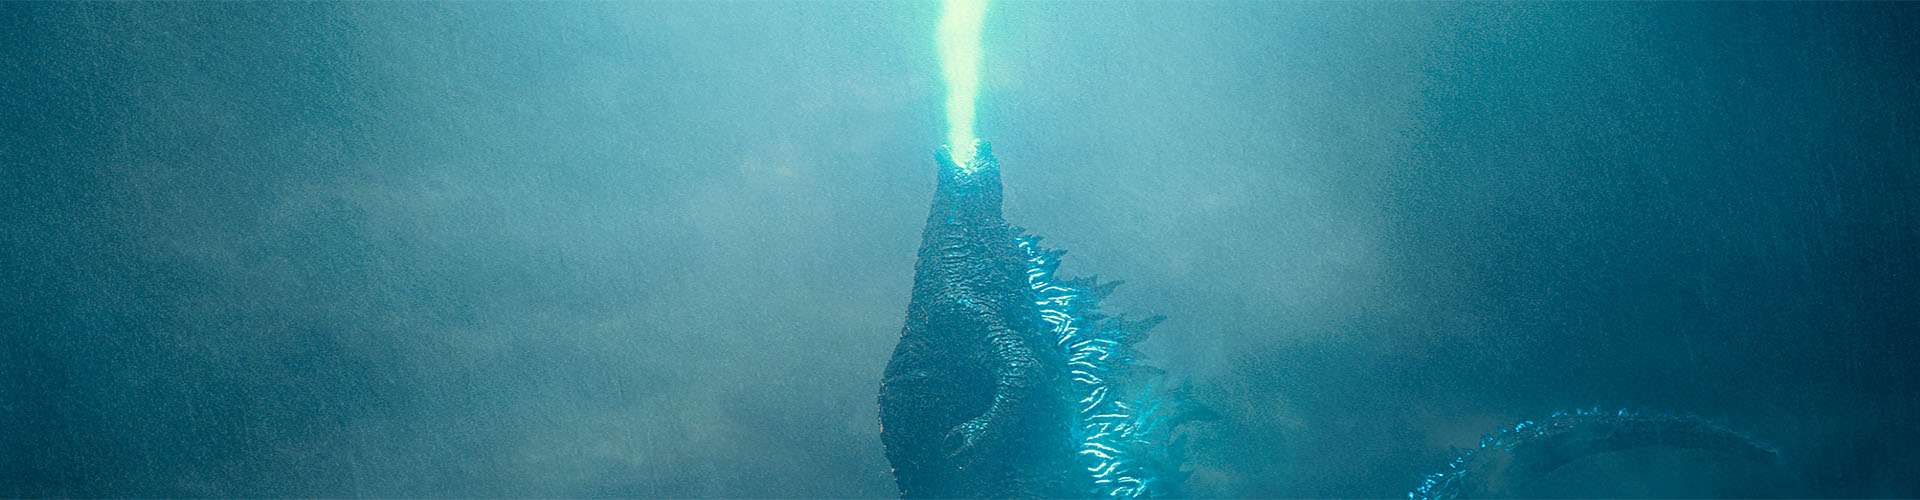 Crítica de Godzilla: King of the Monsters